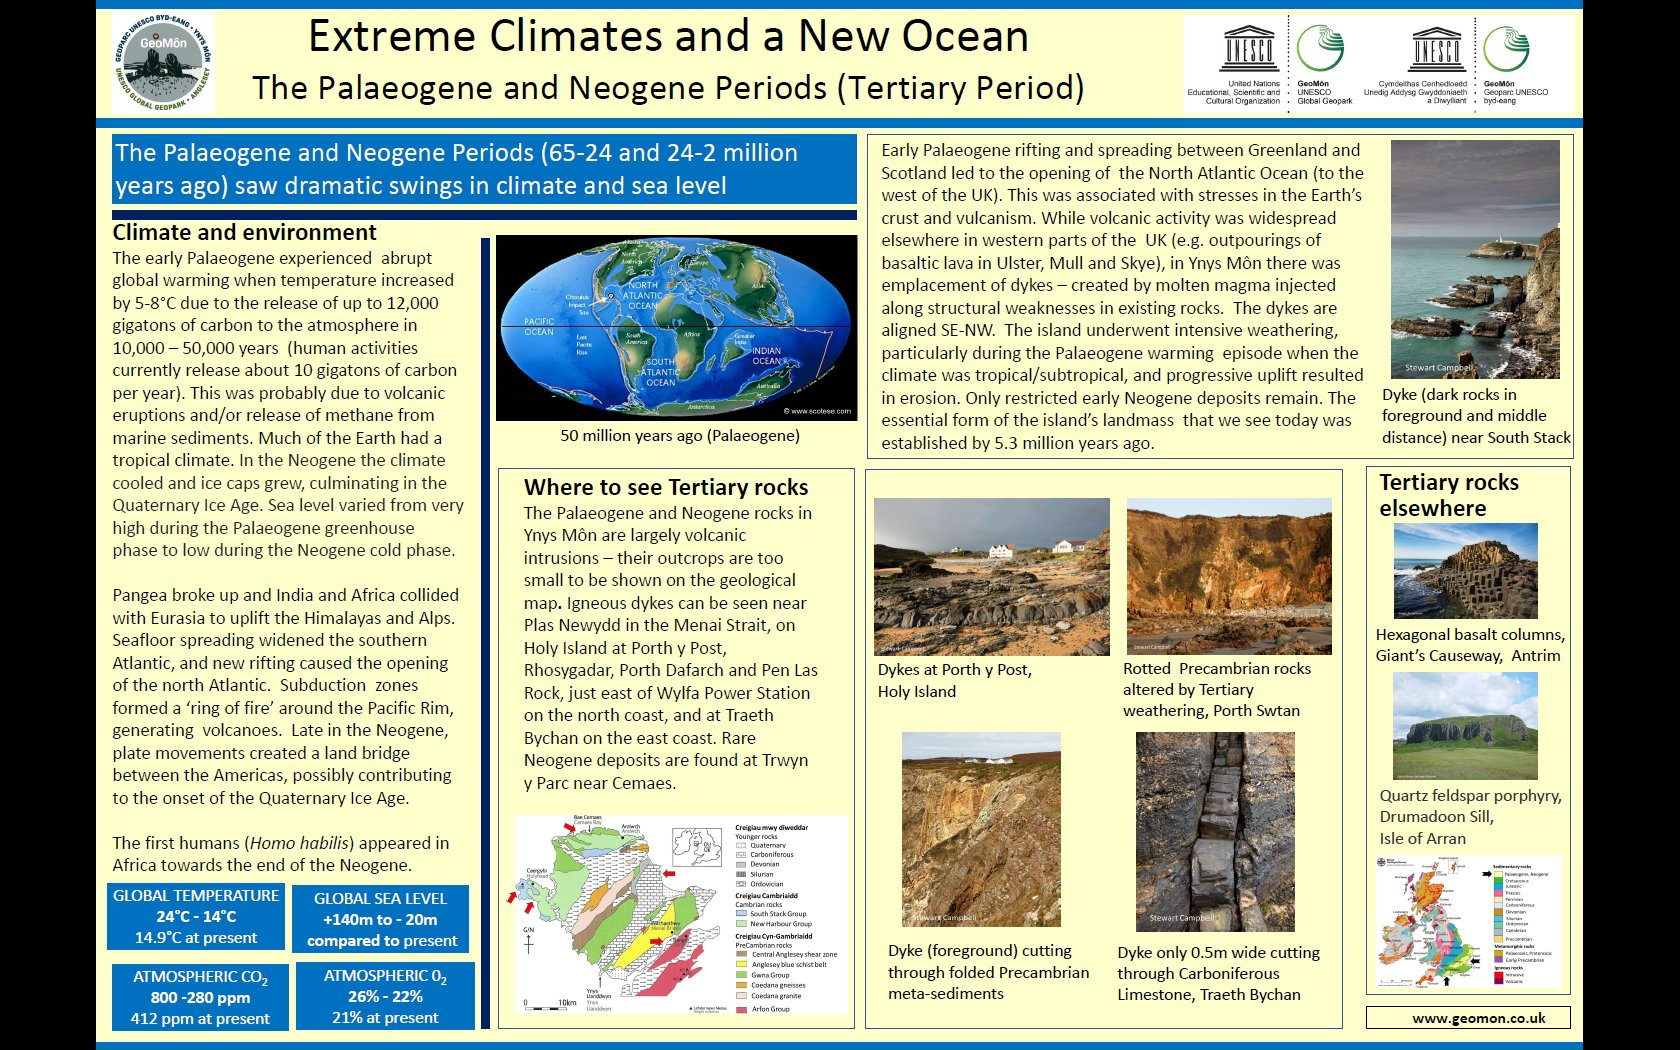 Poster showing geological conditions and climate in Tertiary times